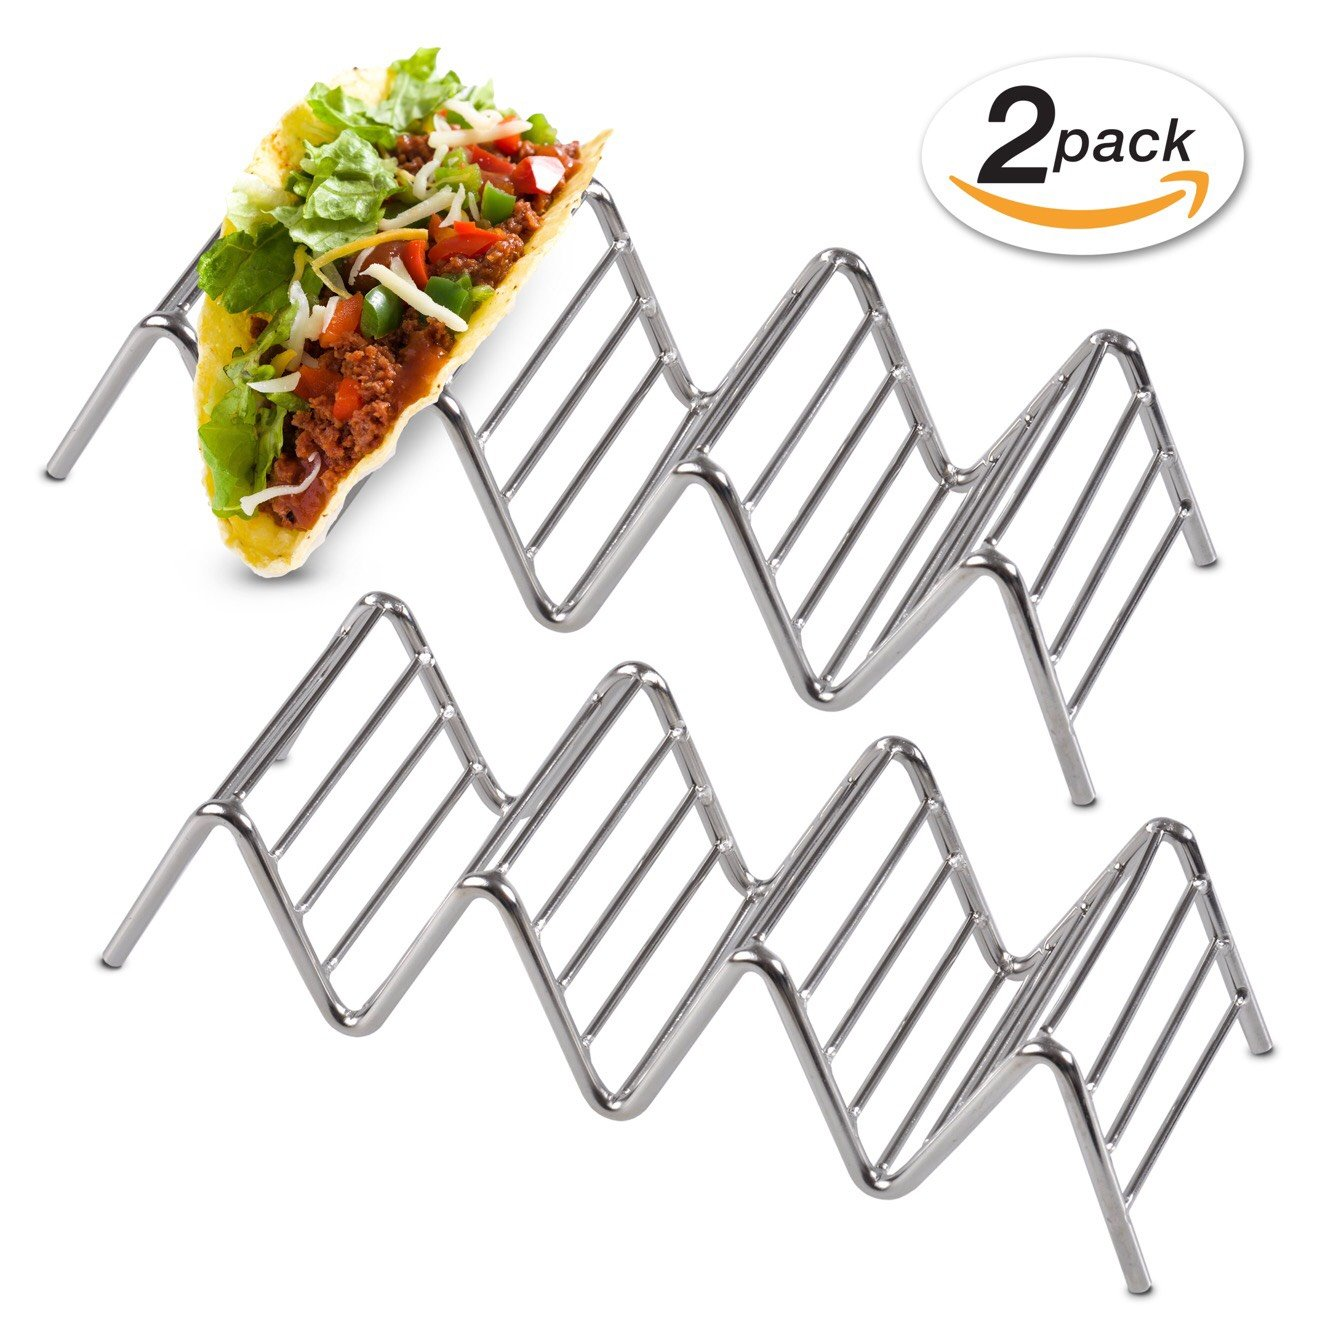 Taco Holders Stainless Steel Beautiful Shiny Rust-Resistant Stainless Steel Taco Holder Stand Dishwasher & Oven Safe for Better Filling & Serving 2 Pack Taco Rack Holders by TacoWize